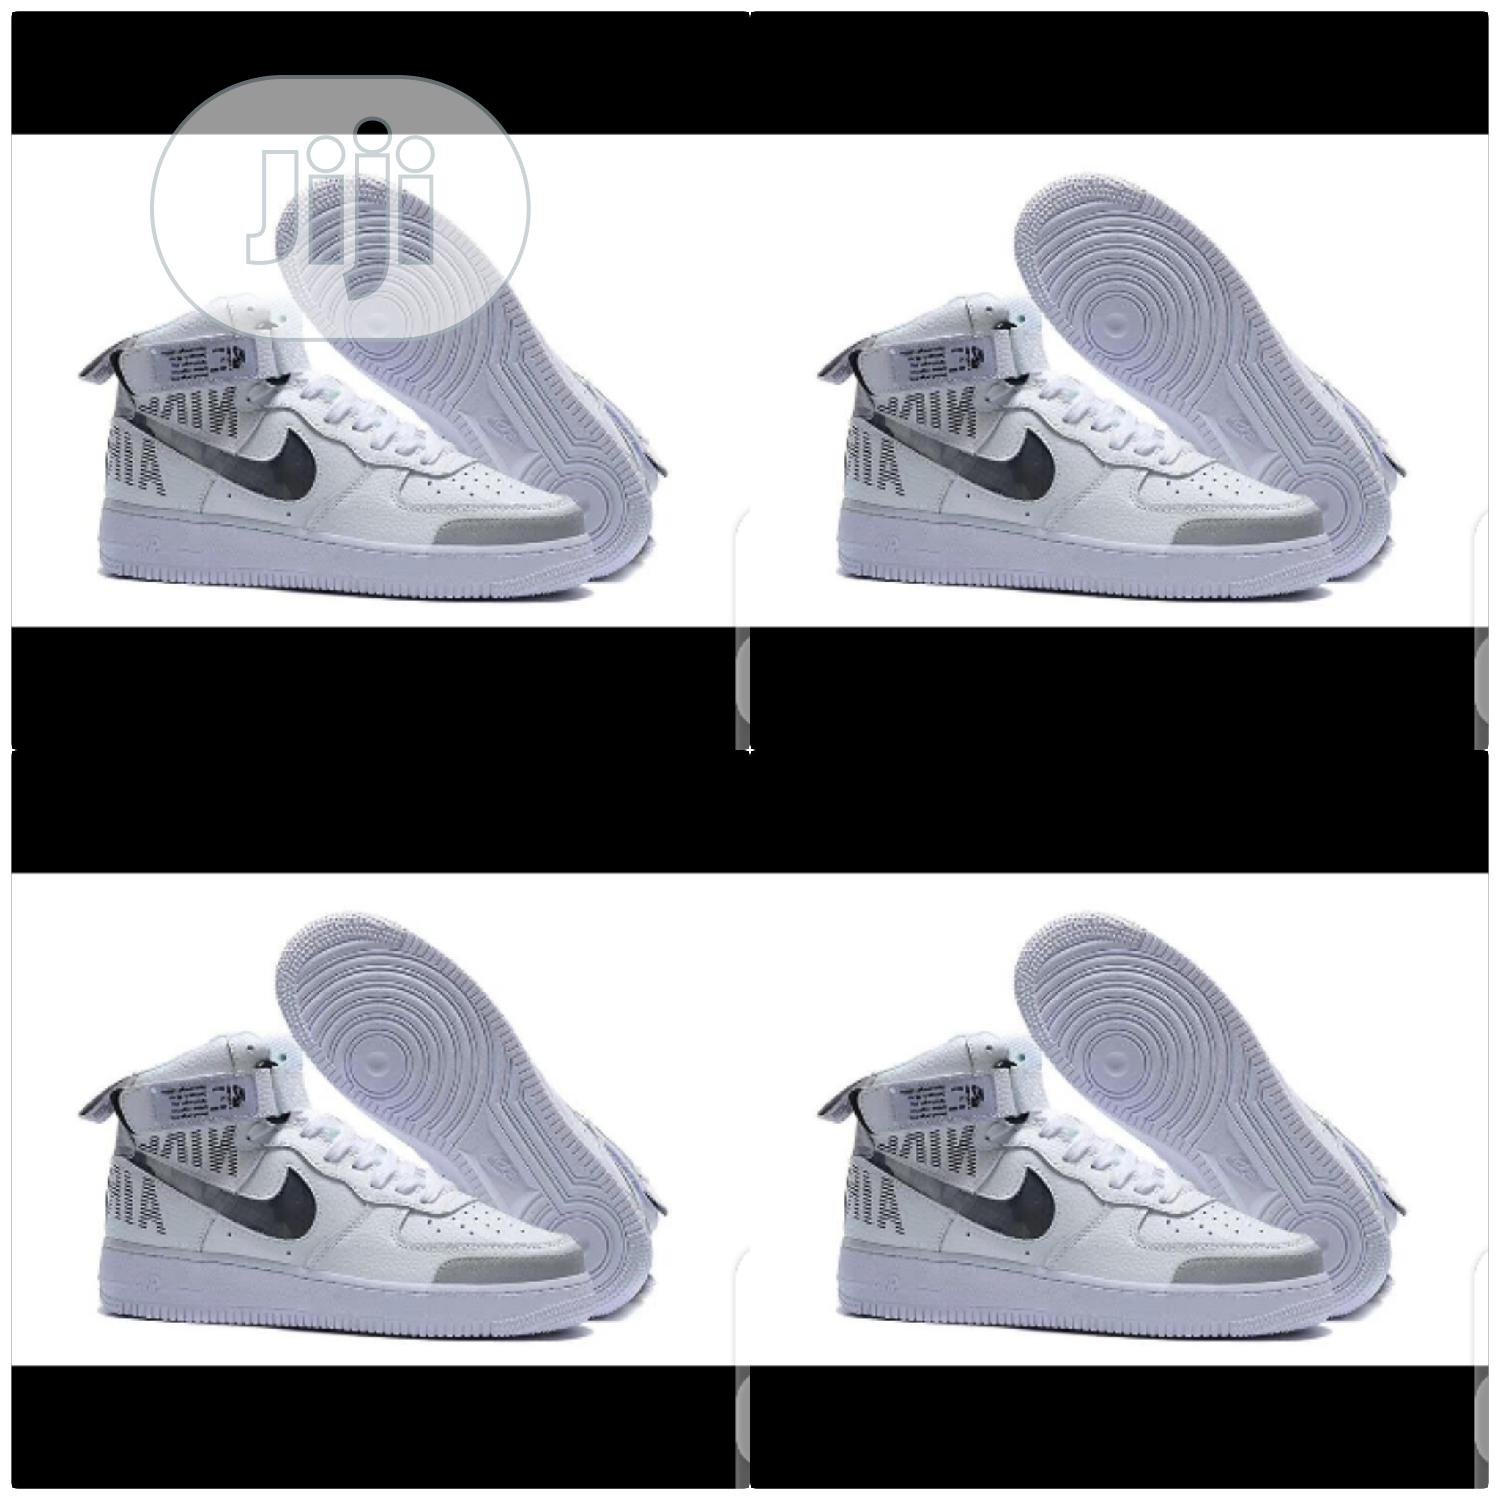 Nike Air Force 1 High Top Sneakers Original | Shoes for sale in Surulere, Lagos State, Nigeria